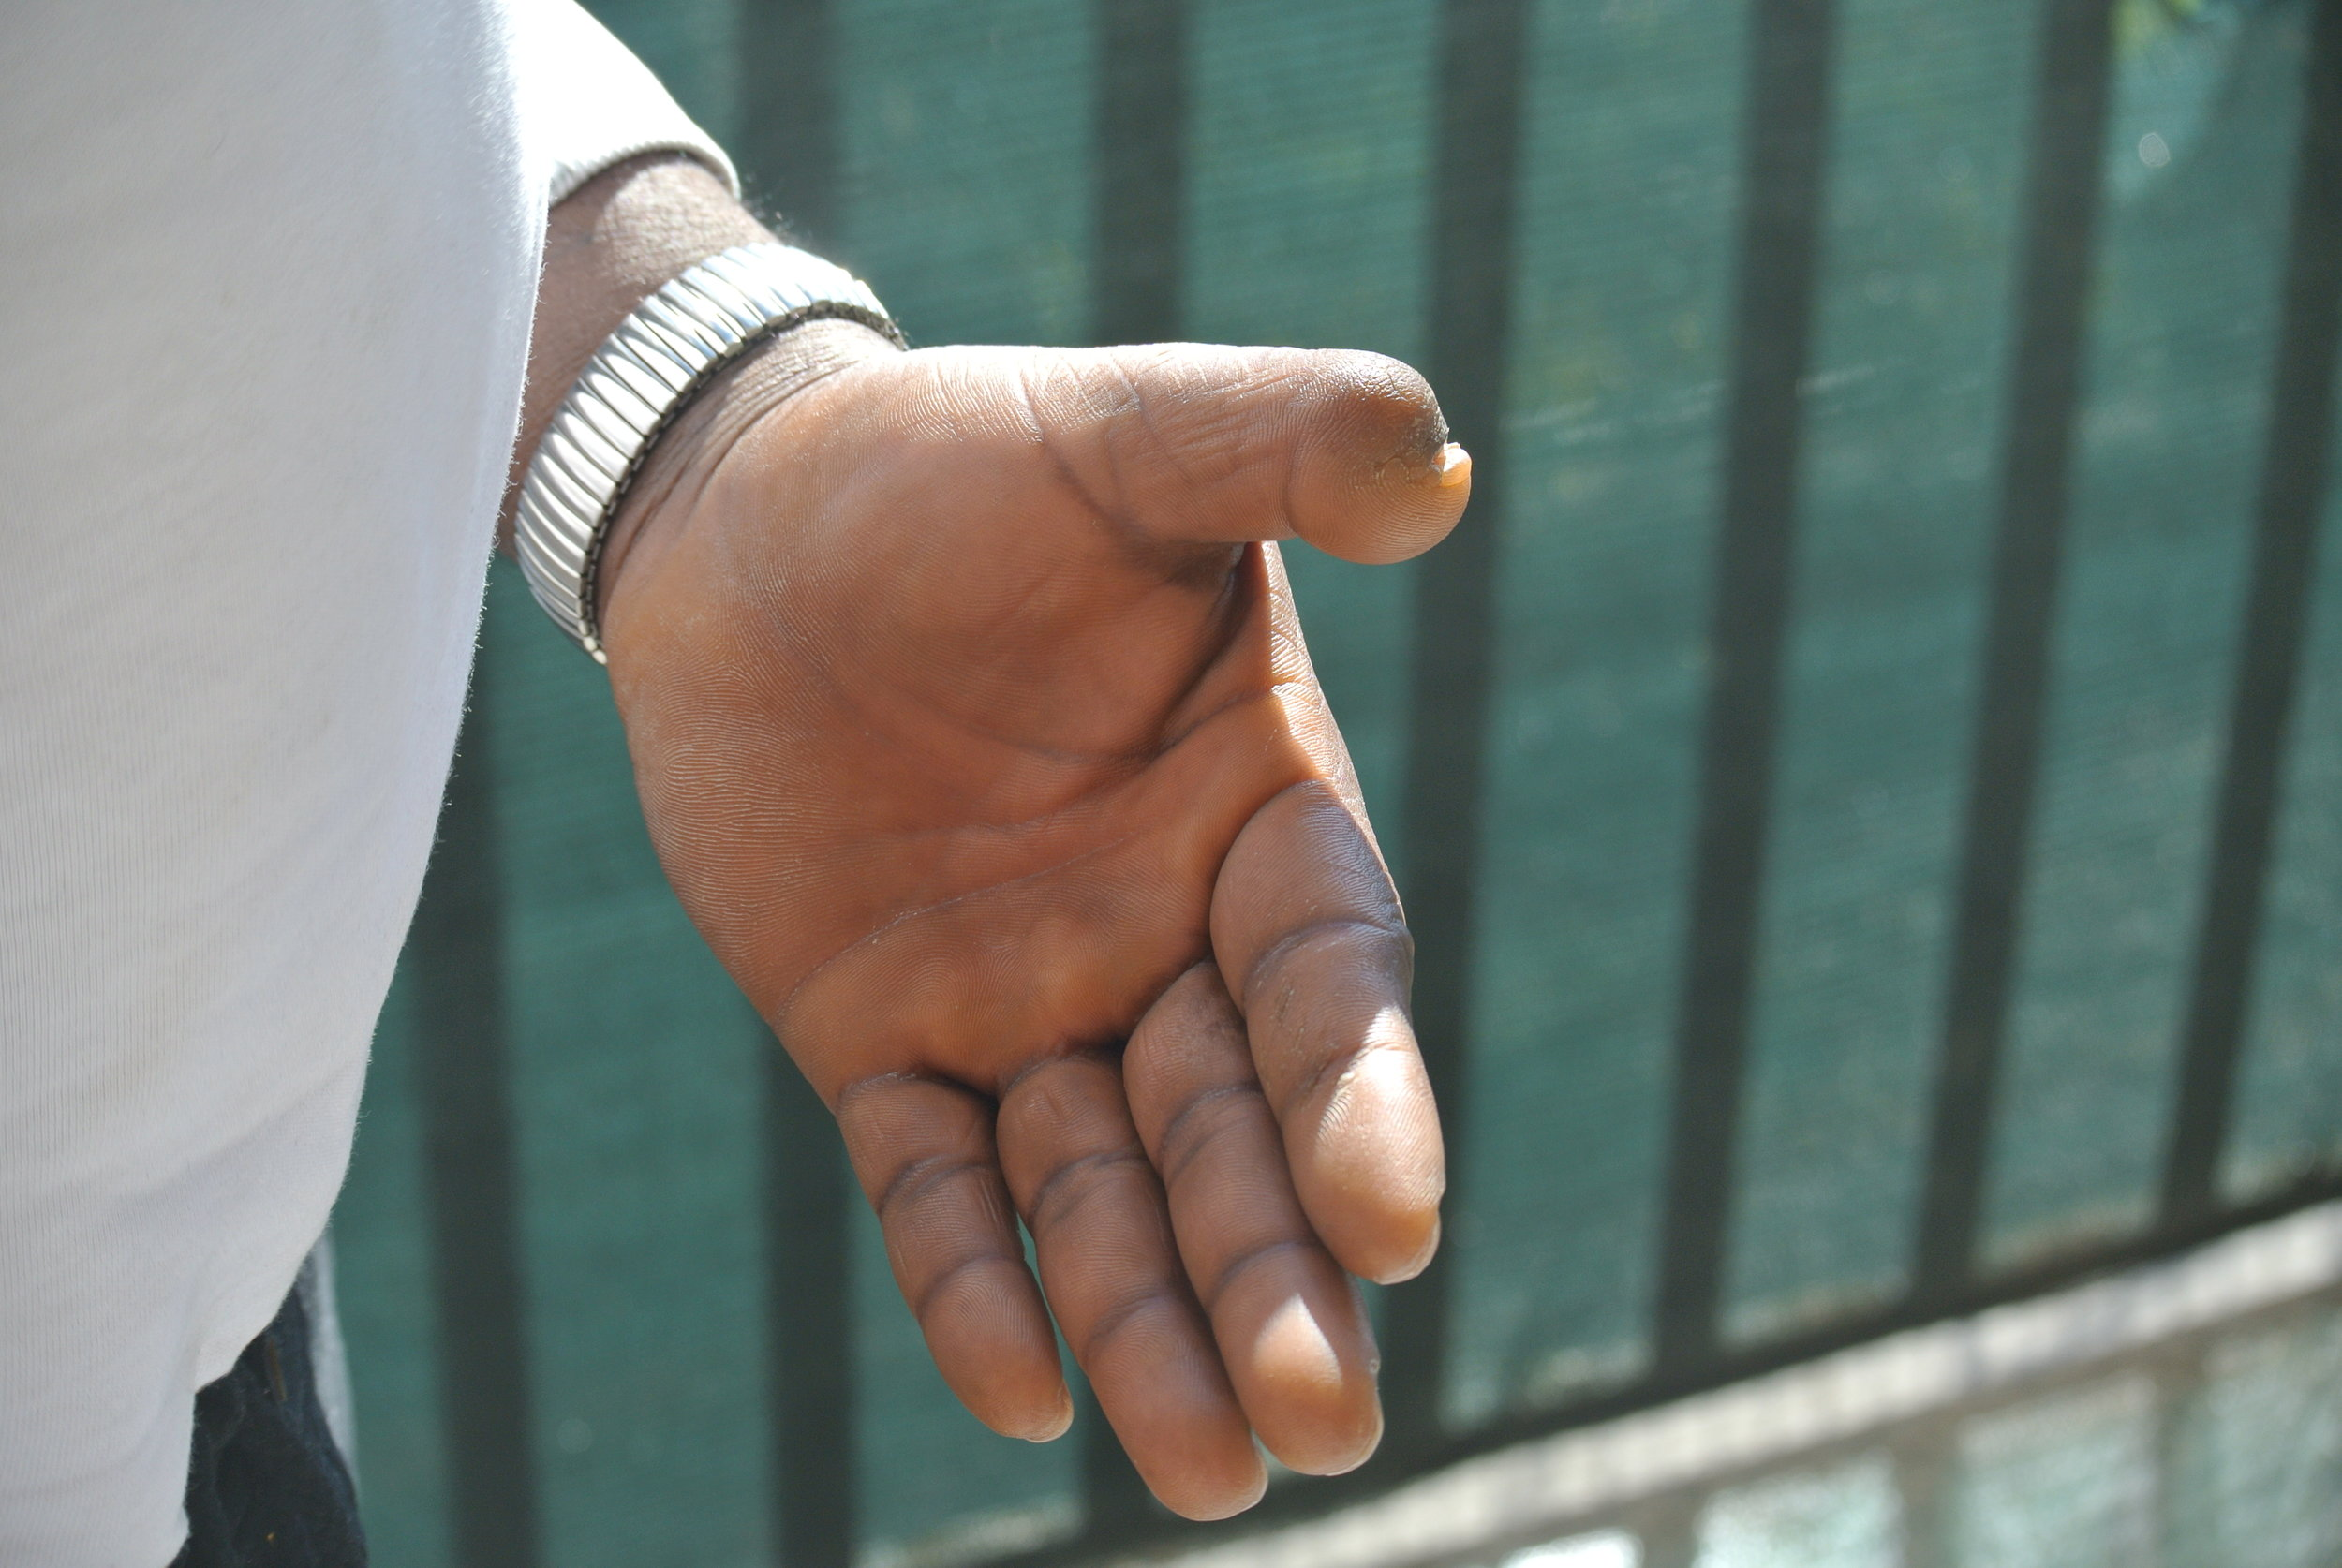 His severed thumb, violence he survived before leaving Ghana. Mendicino, Italy; 19 February 2019. ©Pamela Kerpius